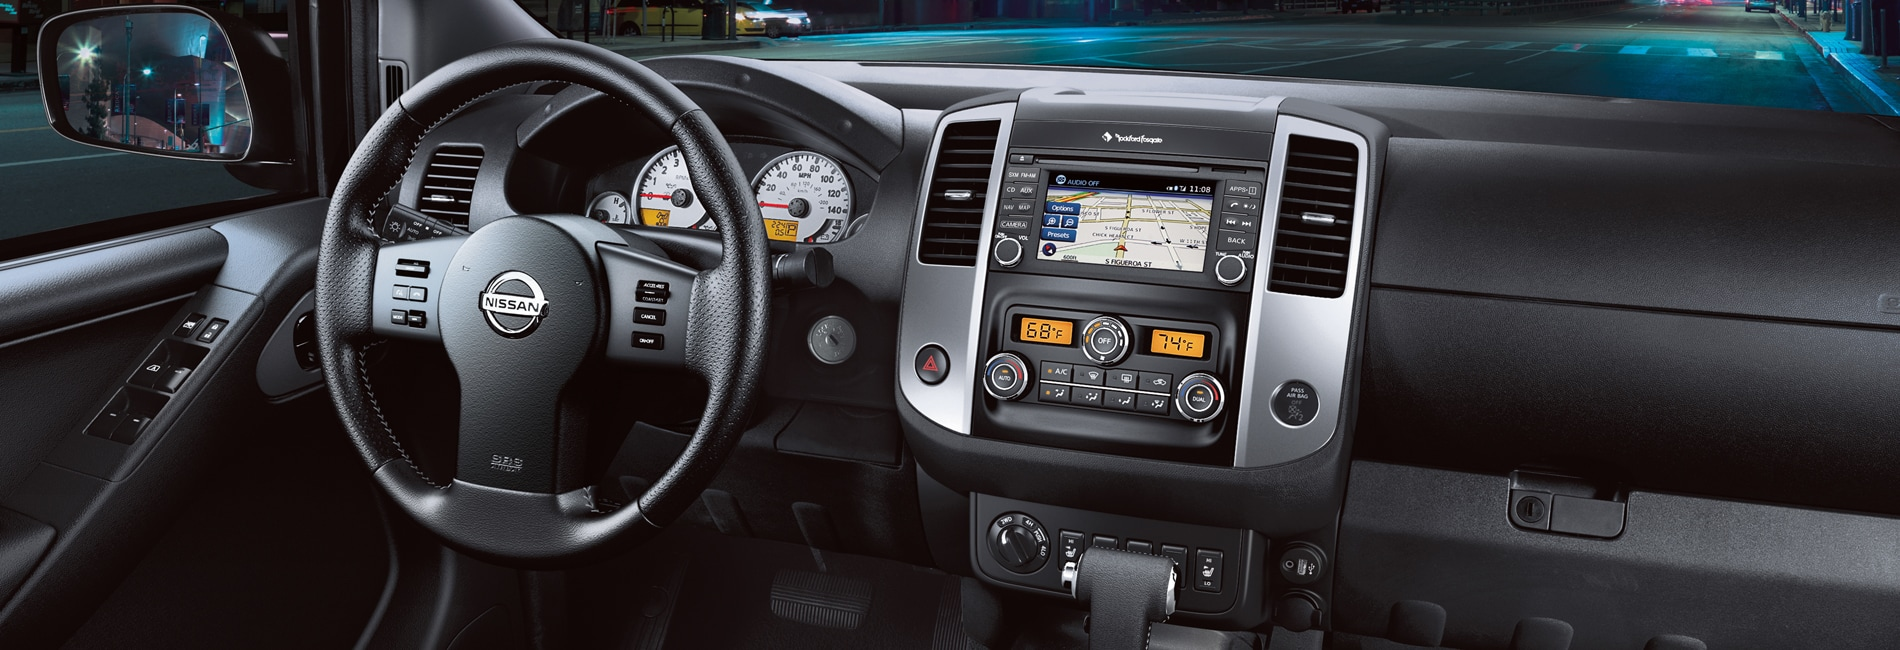 Nissan Frontier Interior Vehicle Features